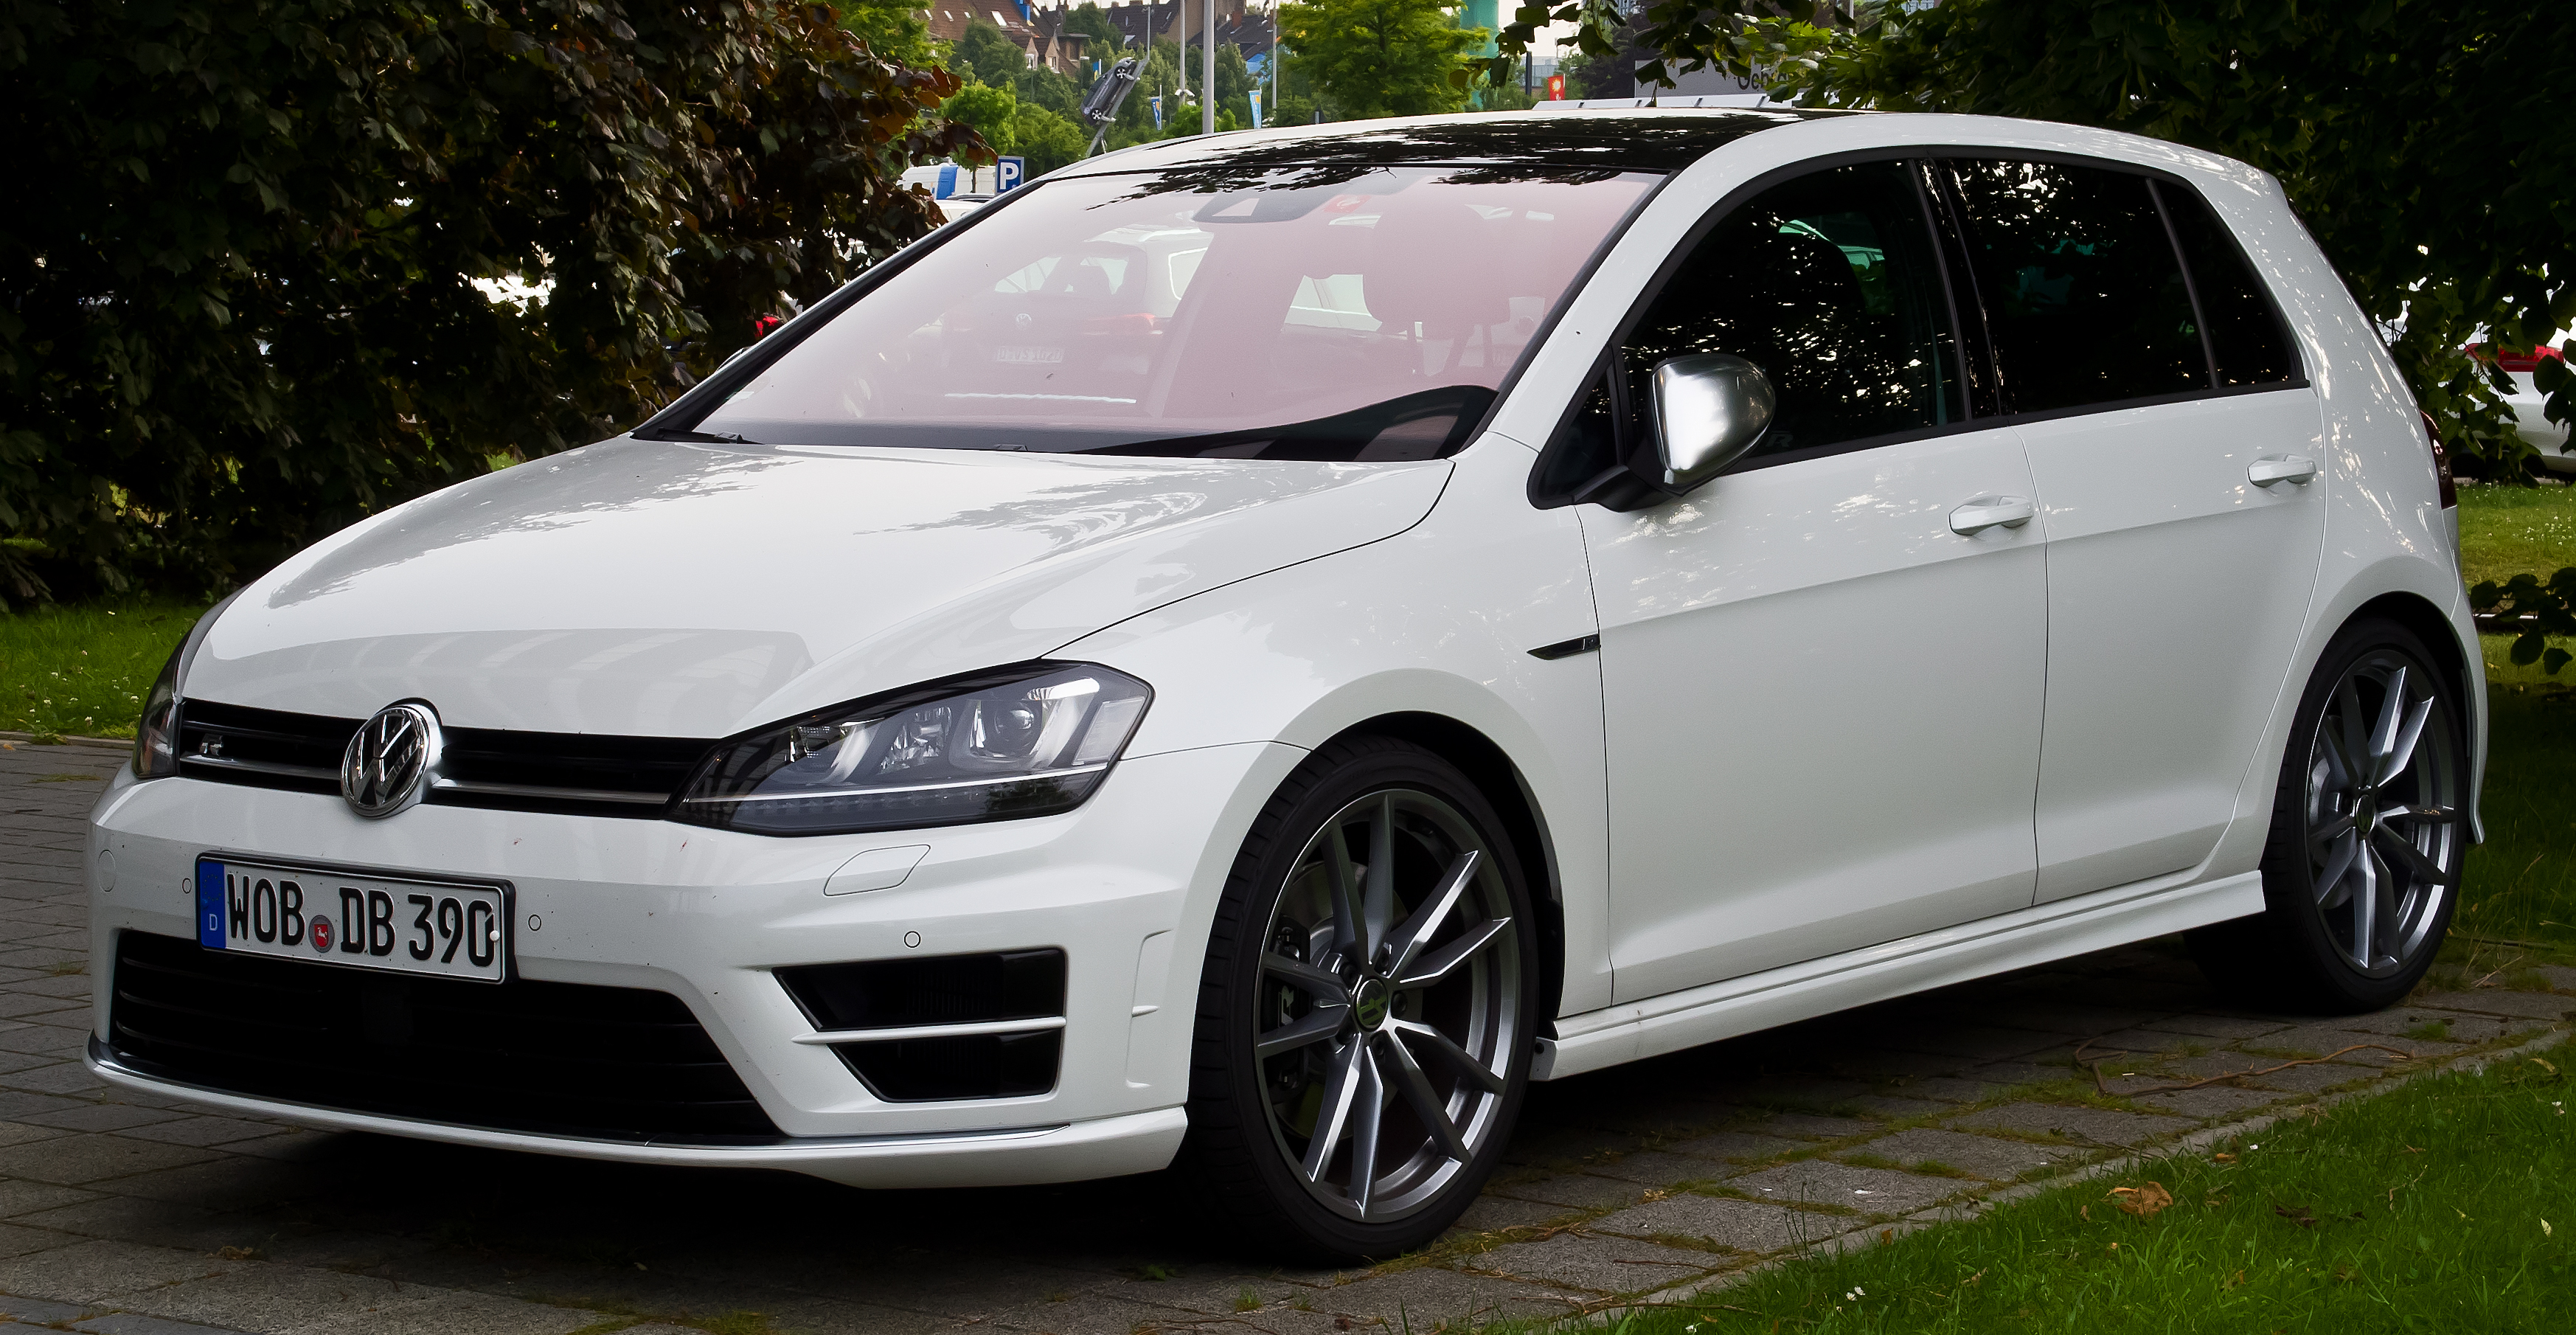 file vw golf r vii frontansicht 17 juni 2014 d wikimedia commons. Black Bedroom Furniture Sets. Home Design Ideas